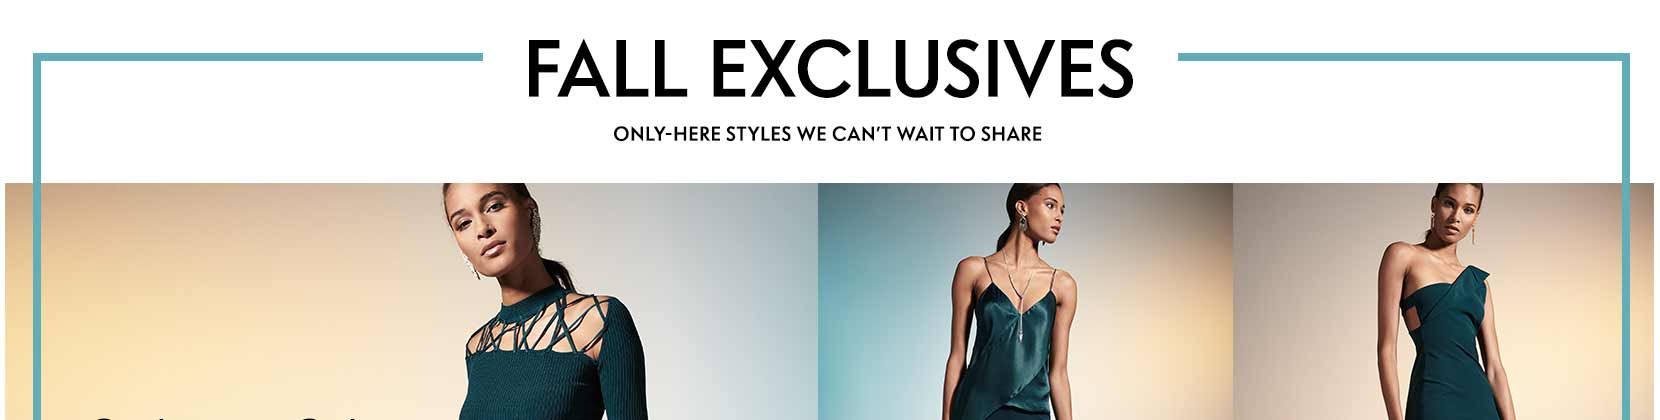 Fall Exclusives Only-here styles we can?t wait to share